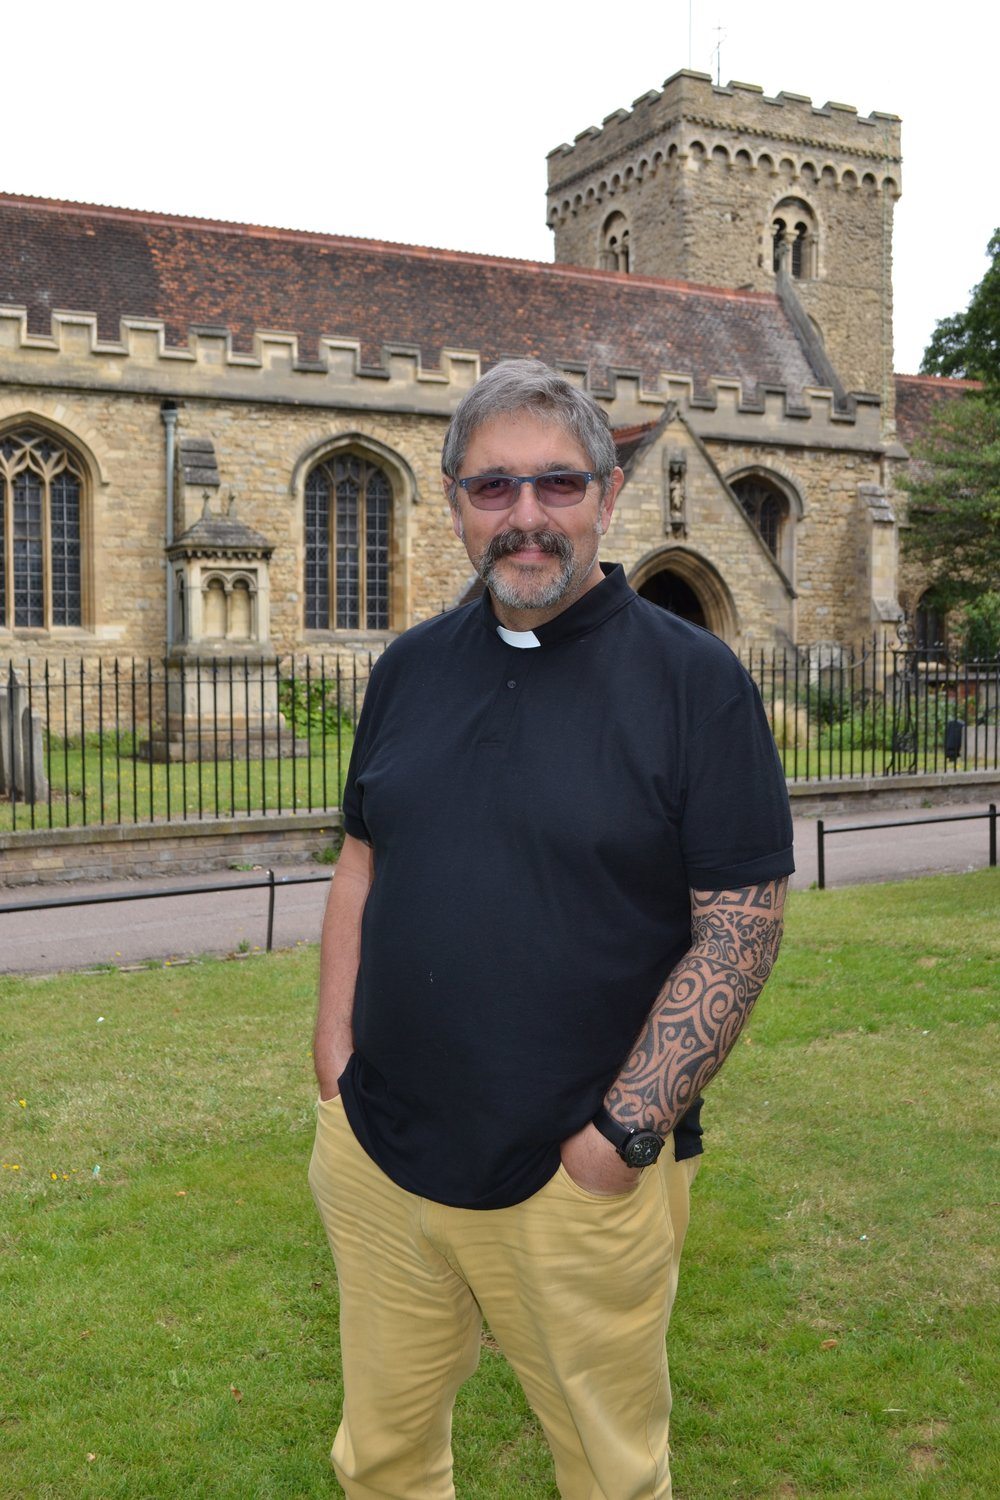 Revd Kelvin outside his church in Bedford